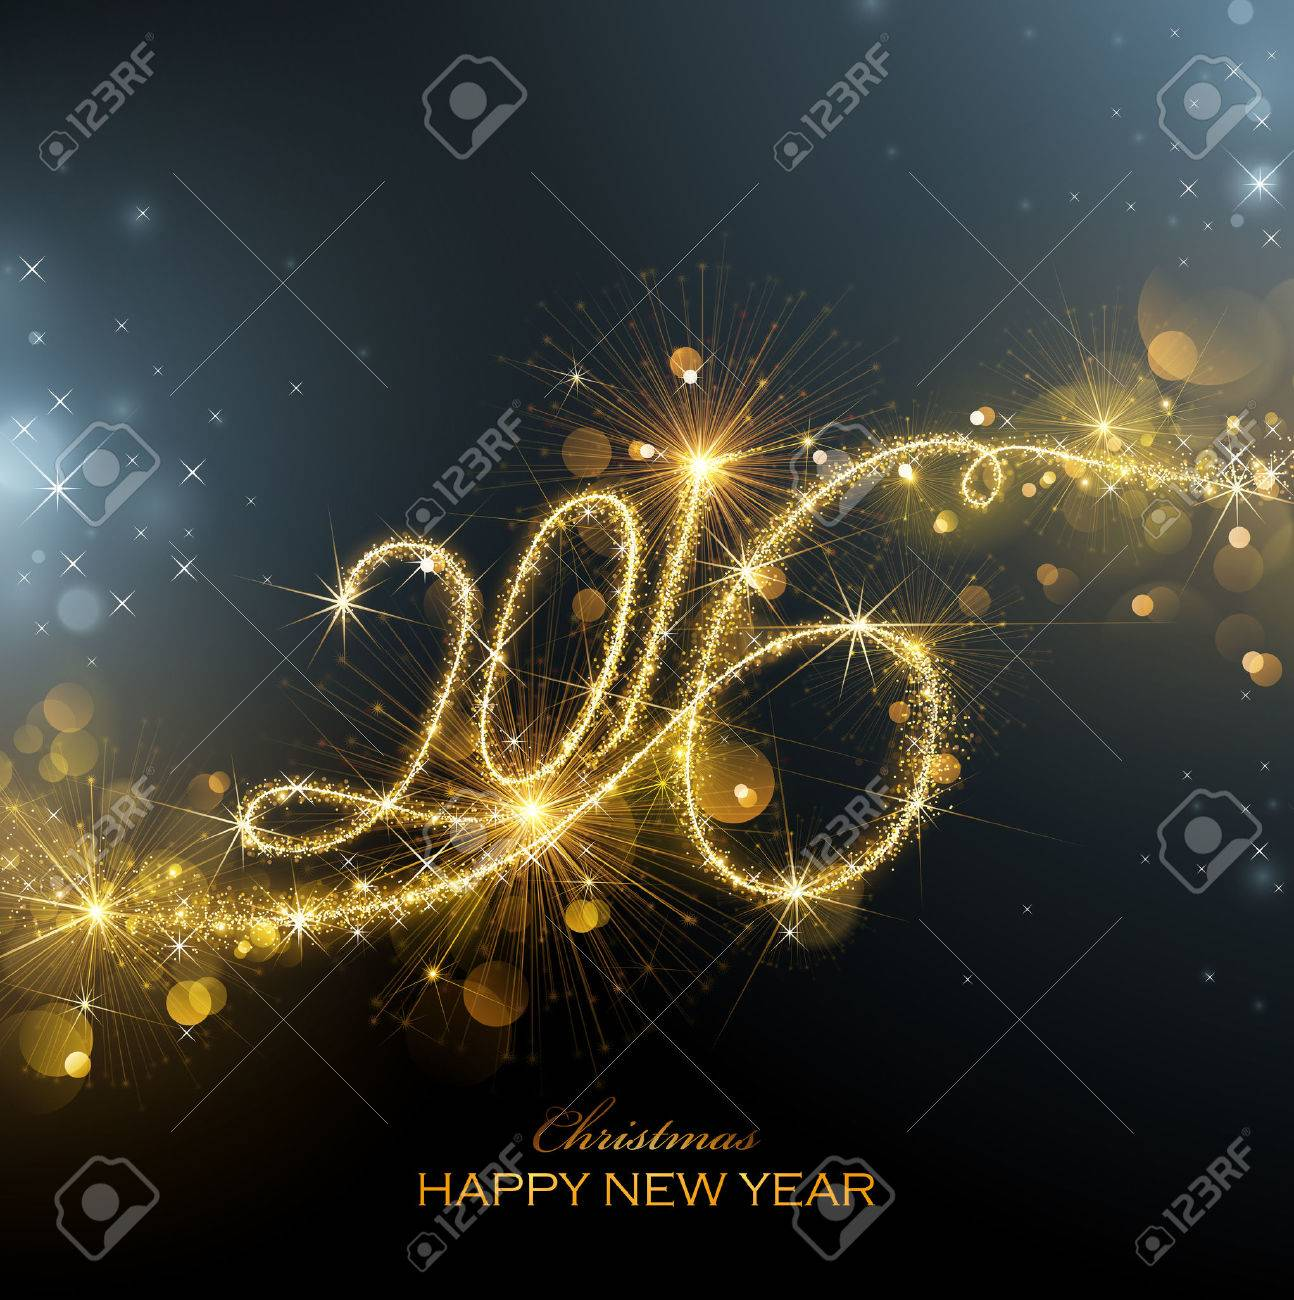 New Year fireworks and confetti 2016. Vector illustration. Standard-Bild - 46976639